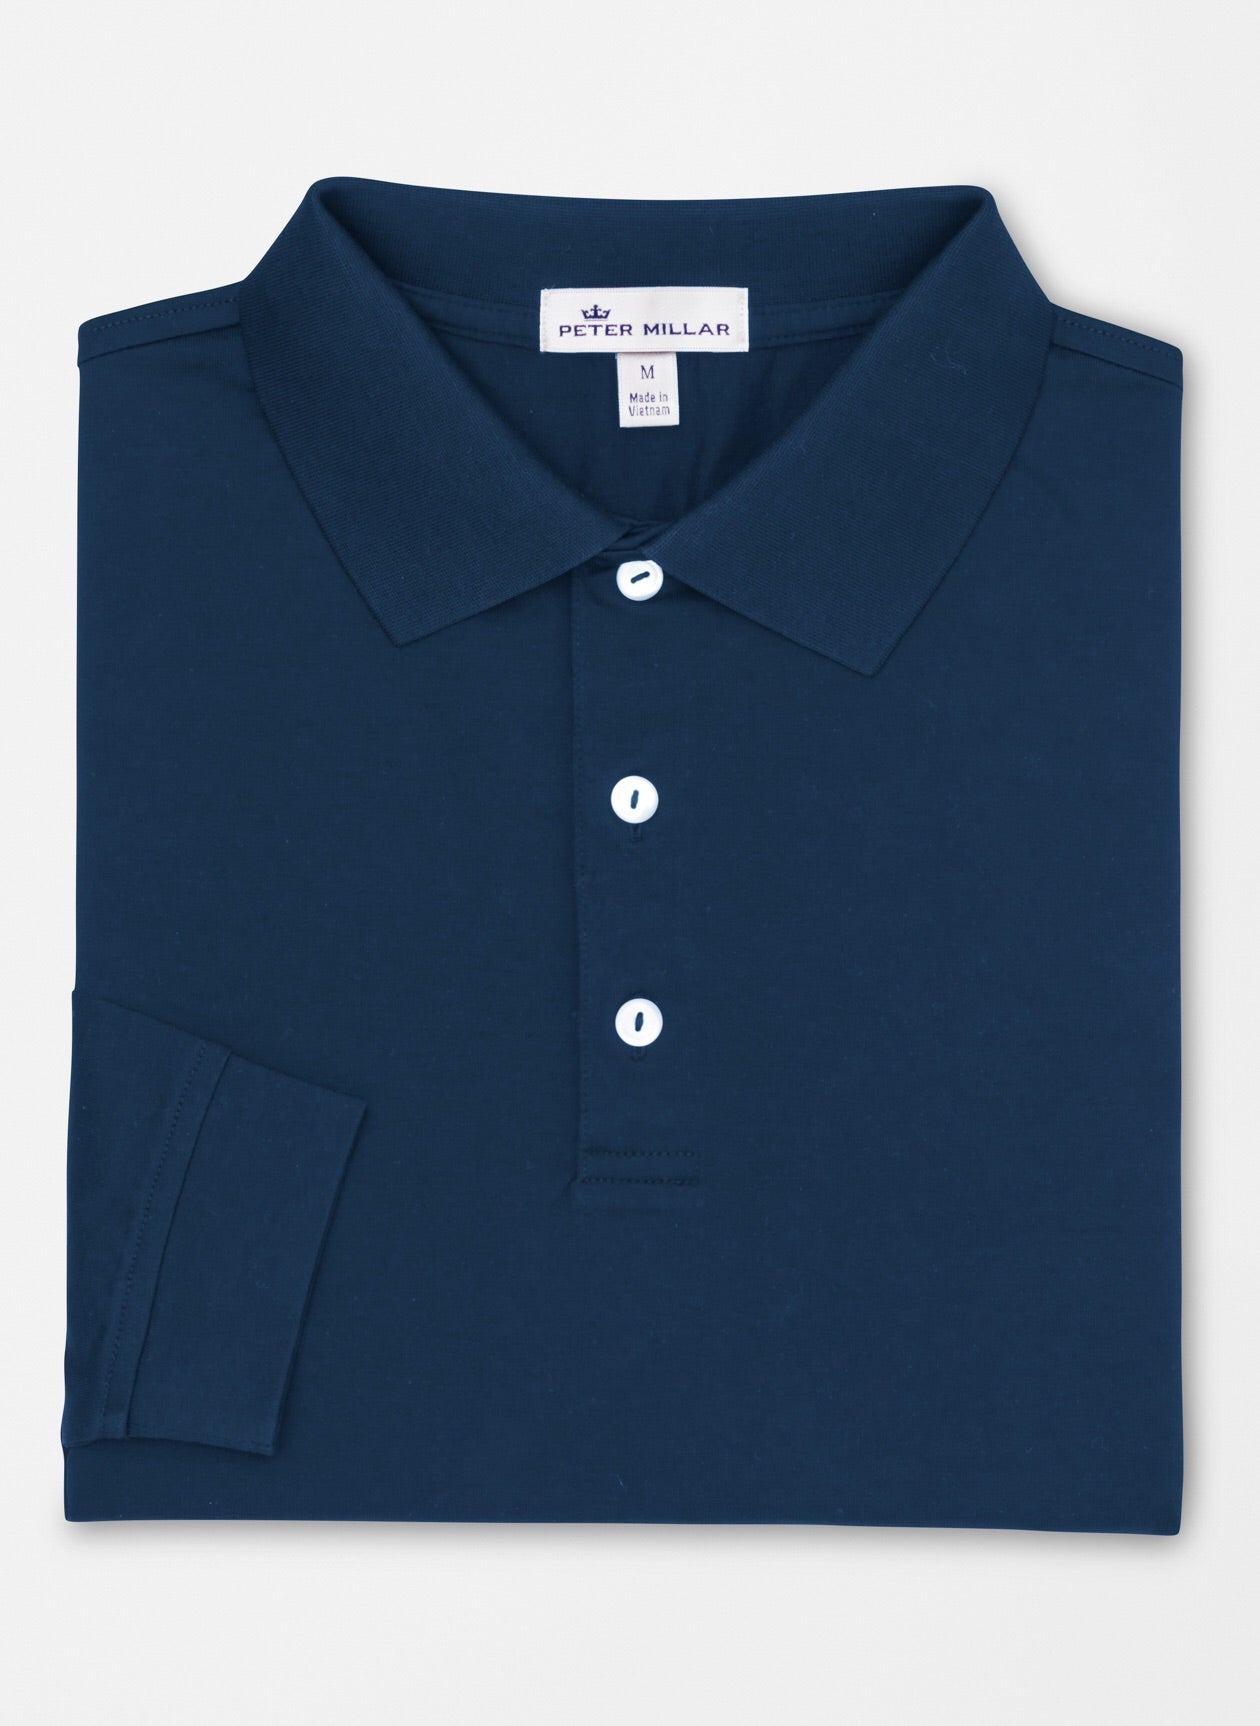 f2e1d03c4 Newest Products - Peter Millar